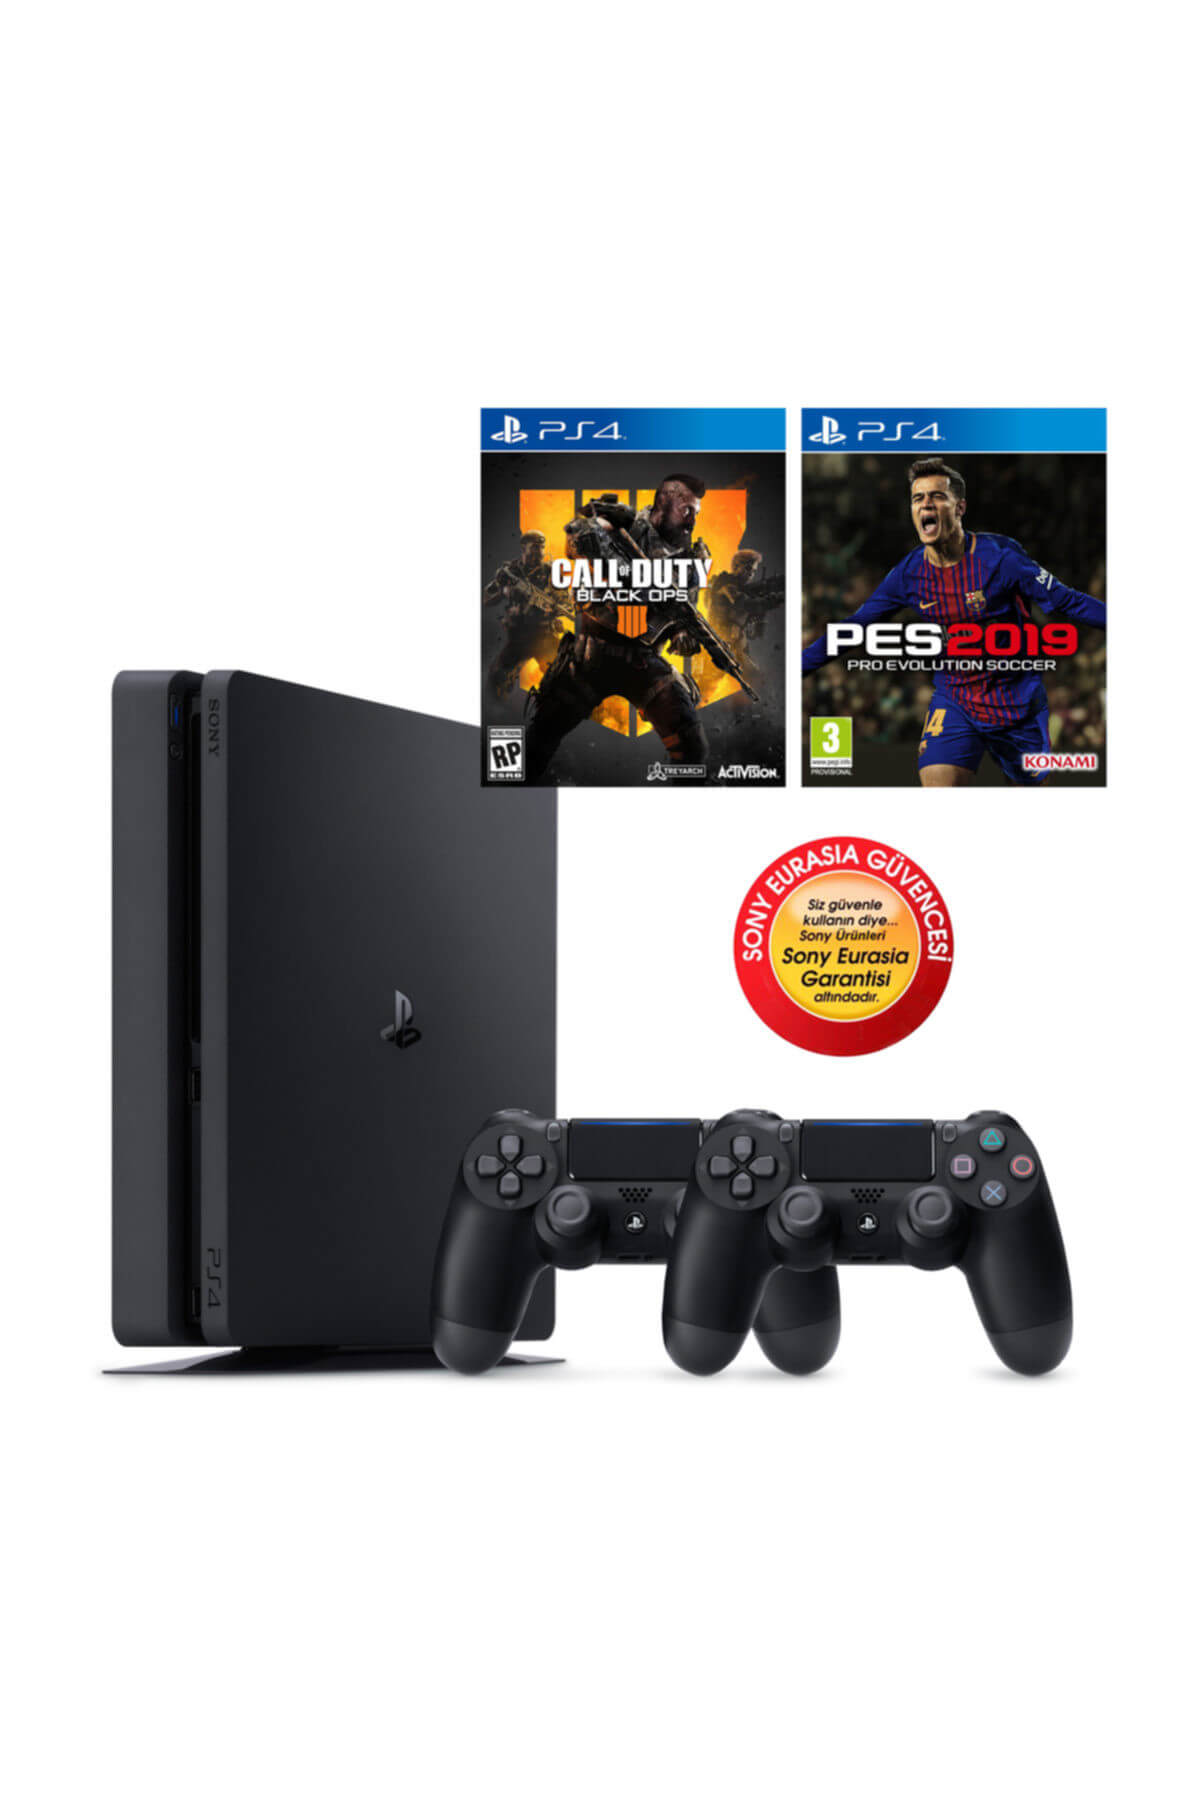 Sony Ps4 Slim 500gb Oyun Konsolu Eurasia Garantili + Ps4 Pes 19 Cod Black Ops 4 2.